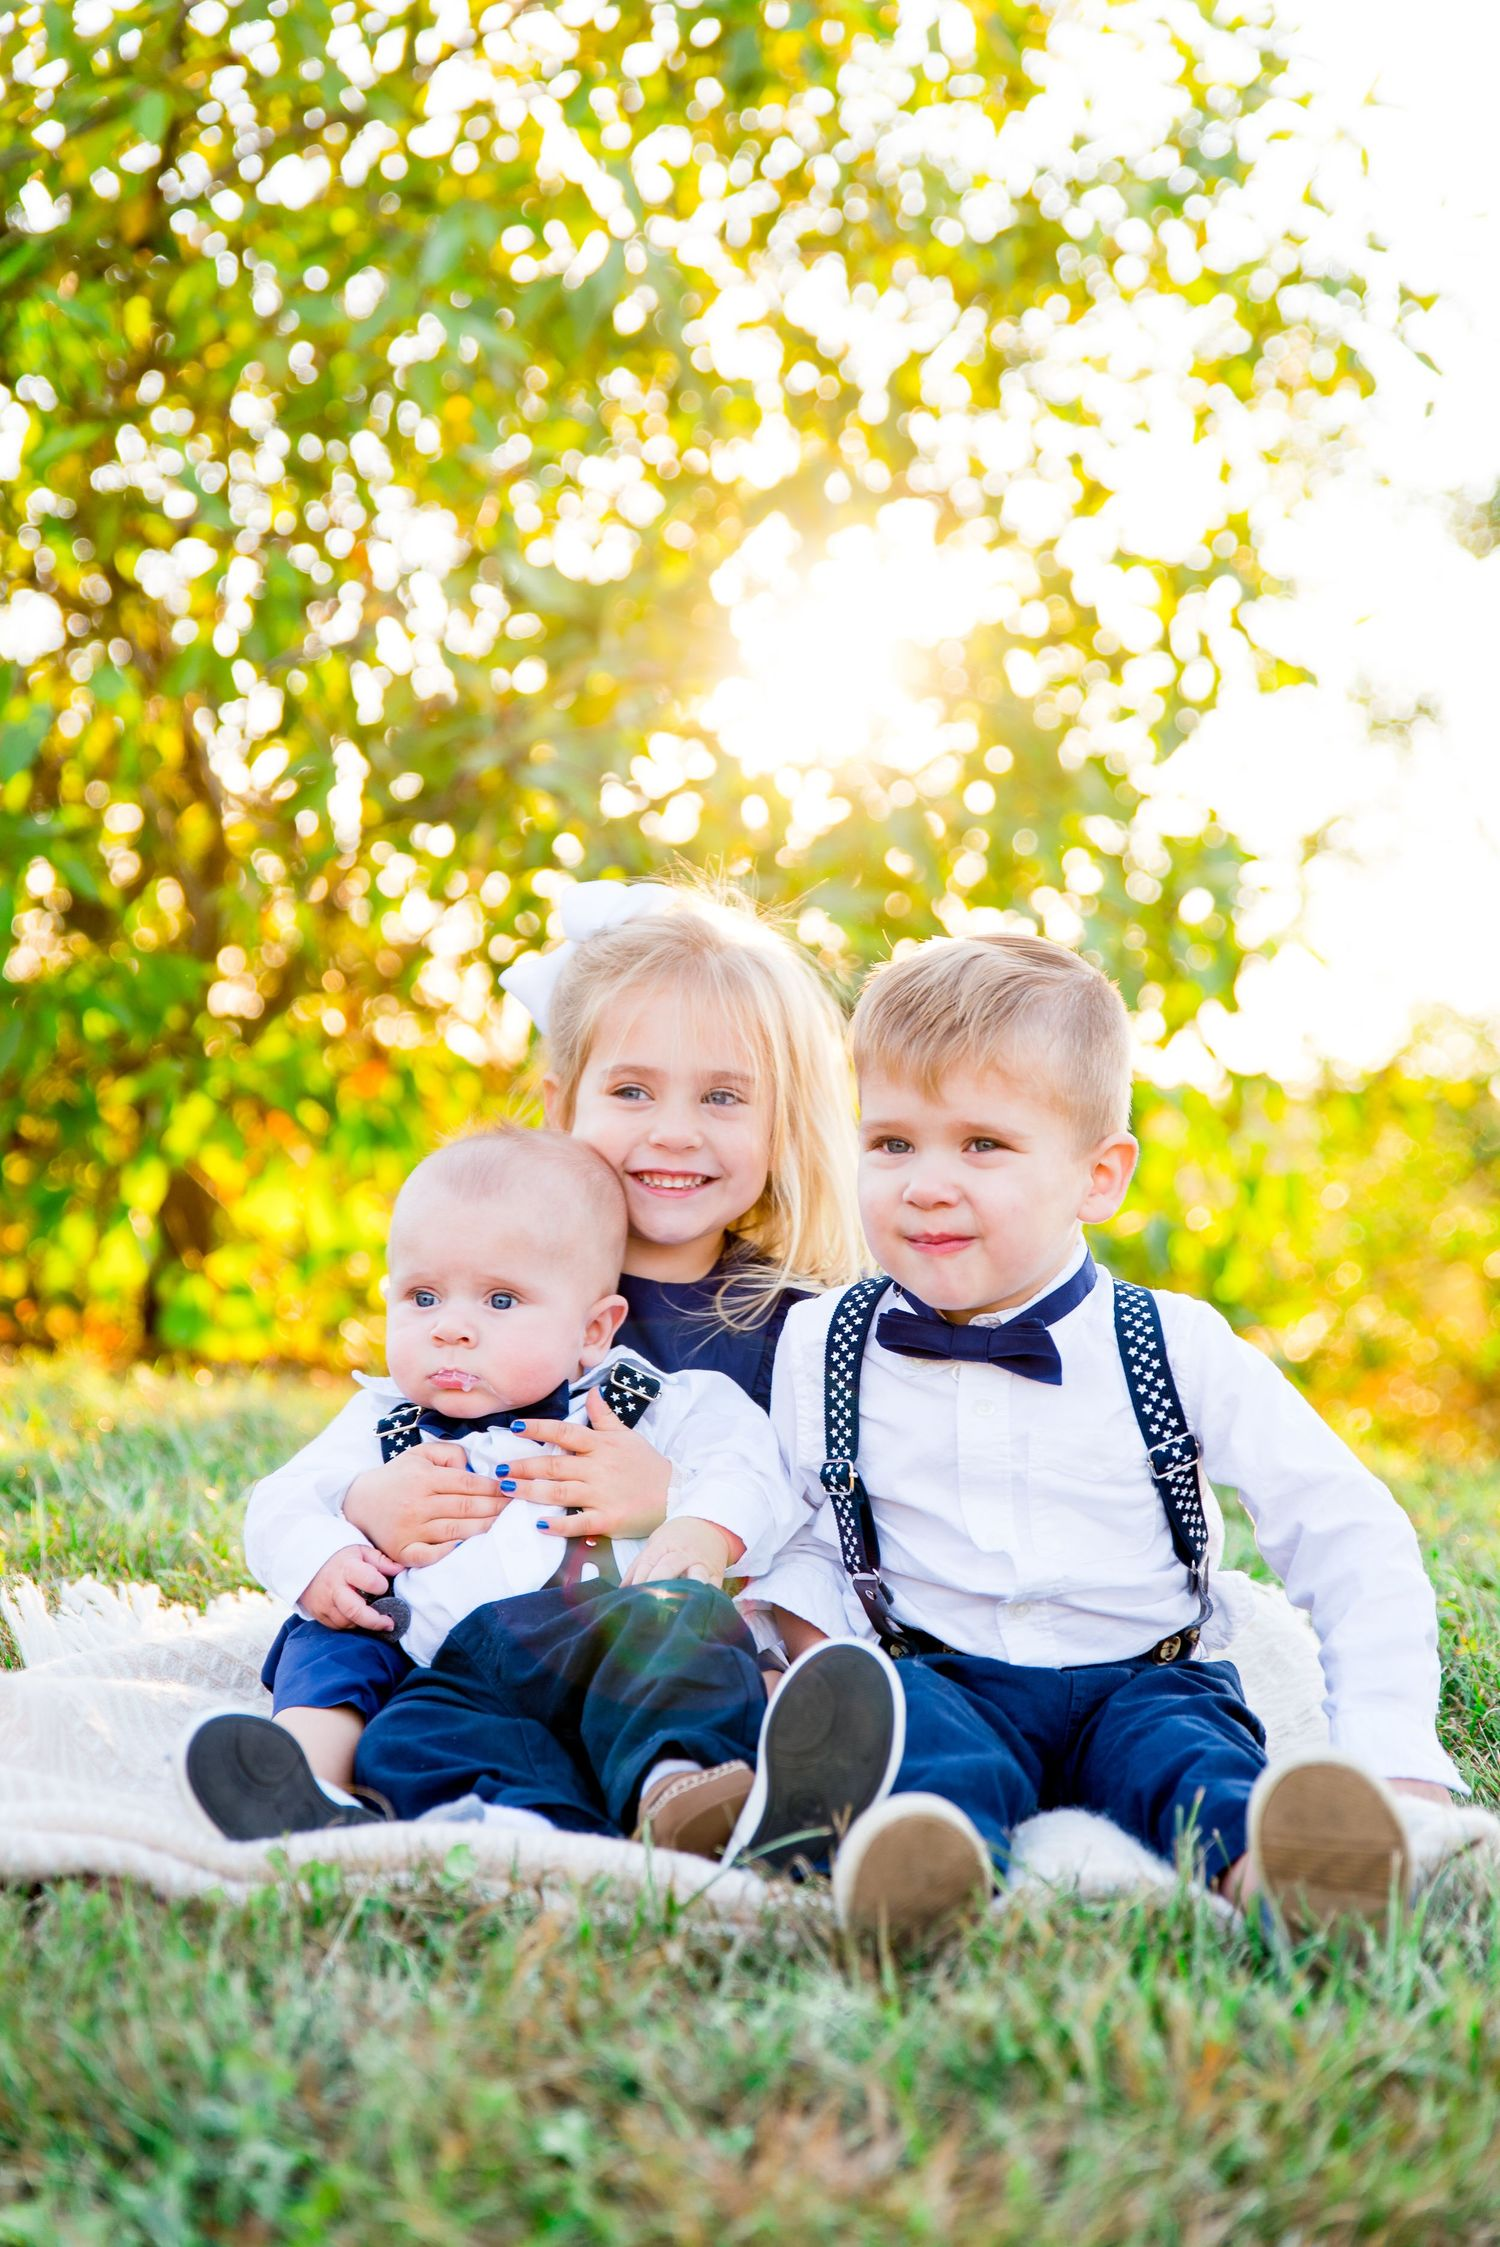 two young children and a baby boy wearing navy and white smiling in front of a blurry green bush at sunset in Chicago